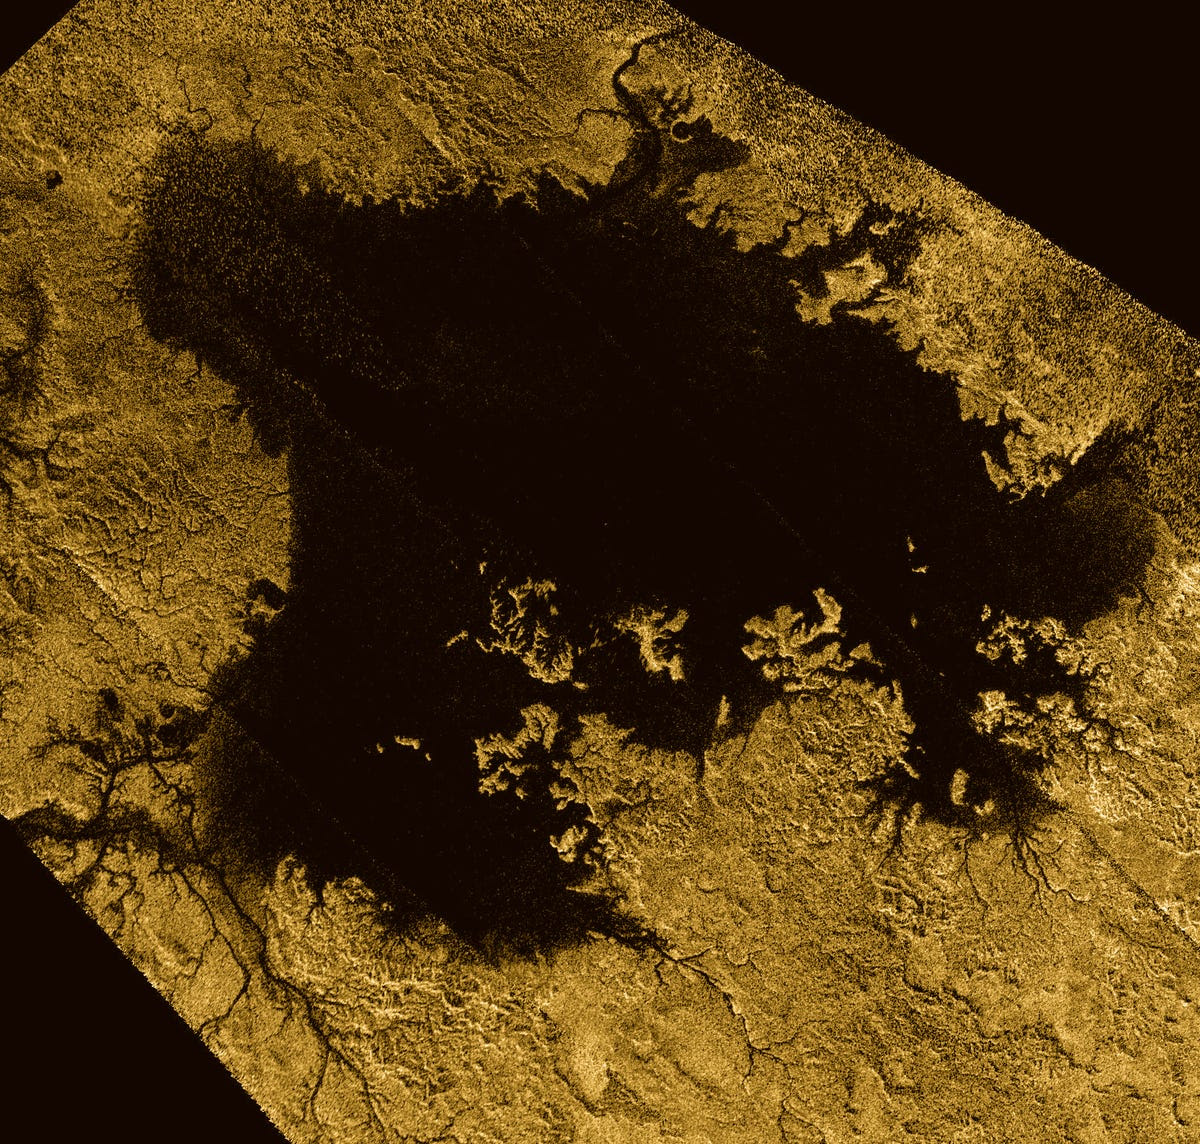 Ligeia Mare is Titan's largest lake. It's full of hydrocarbons like ethane and methane.